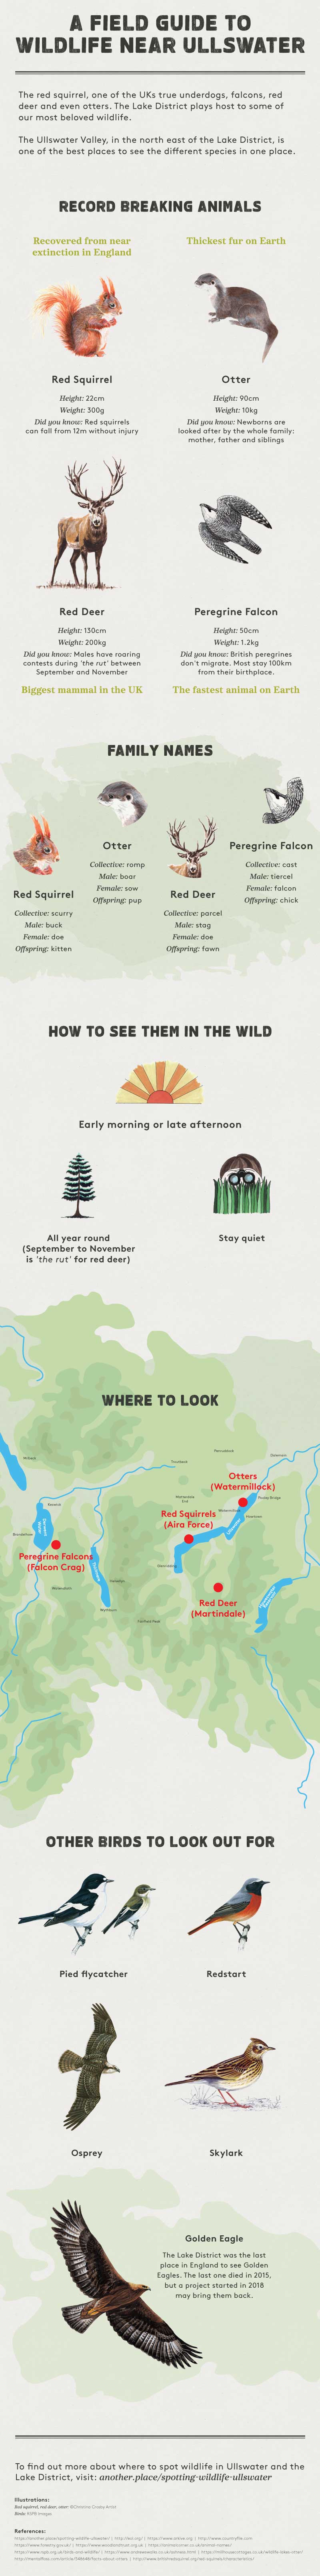 Guide to wildlife in Ullswater - Another Place wildlife infographic